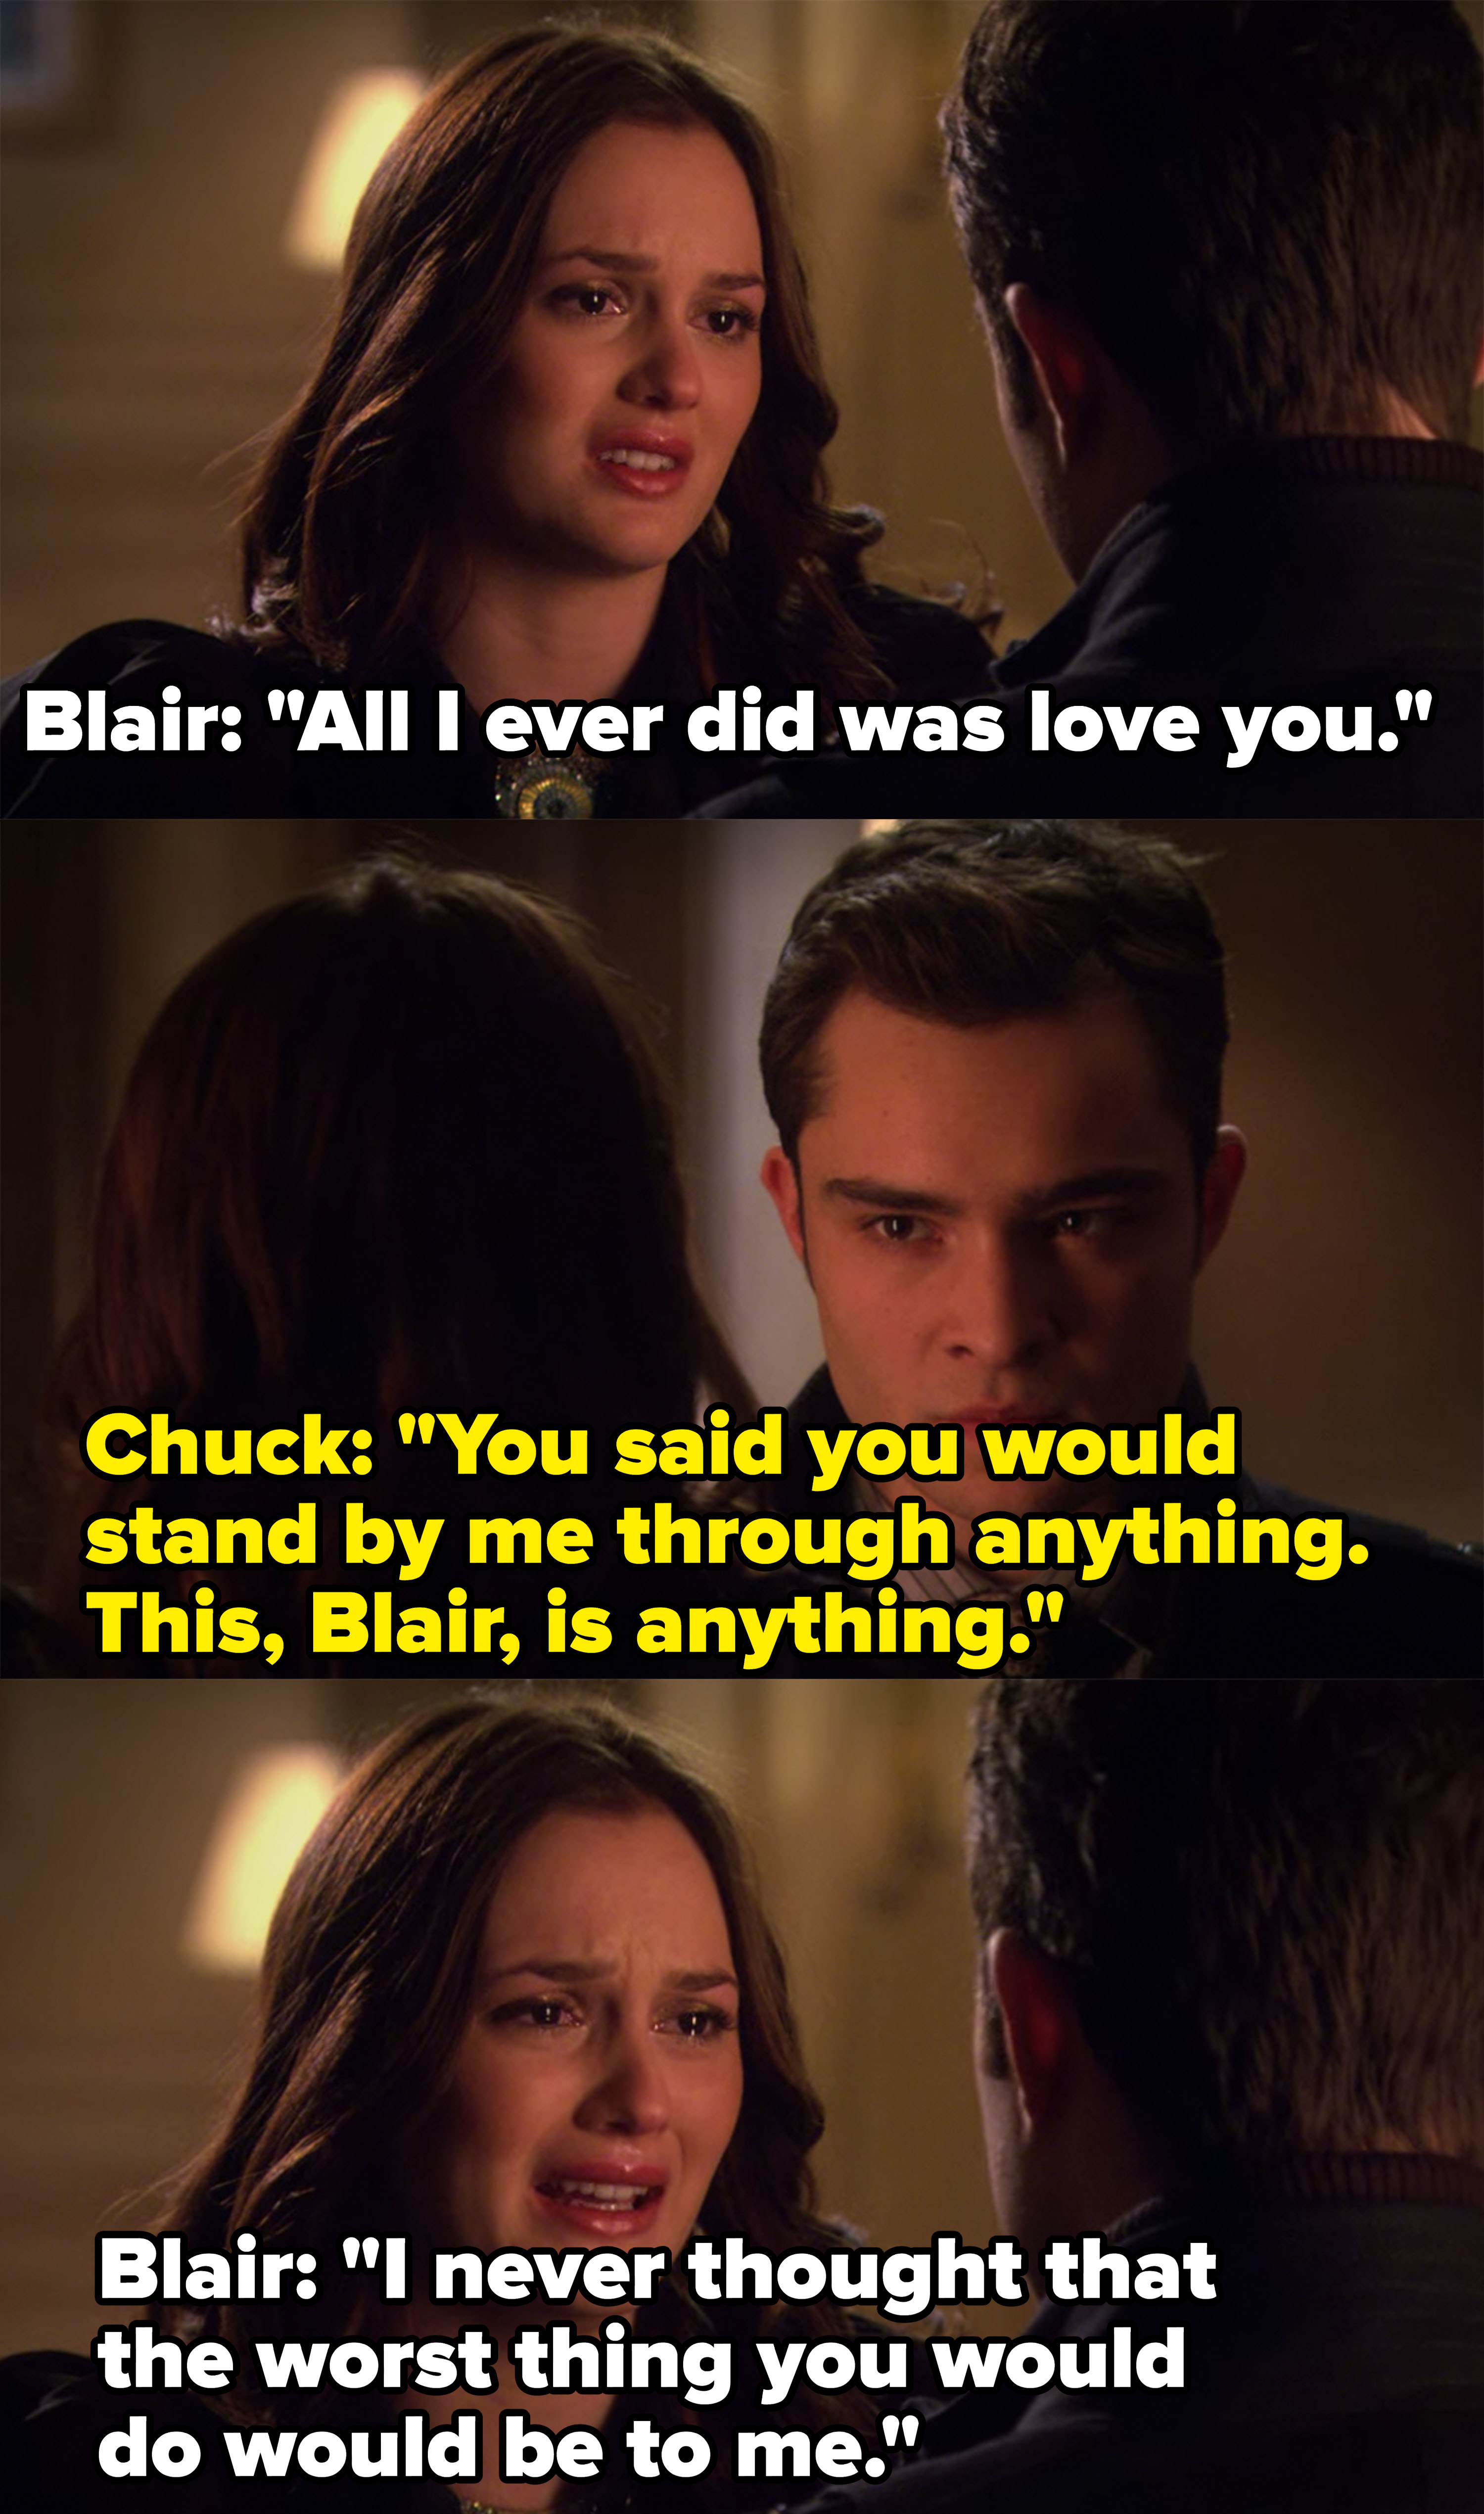 Blair says she never thought the worst thing Chuck did would be to her